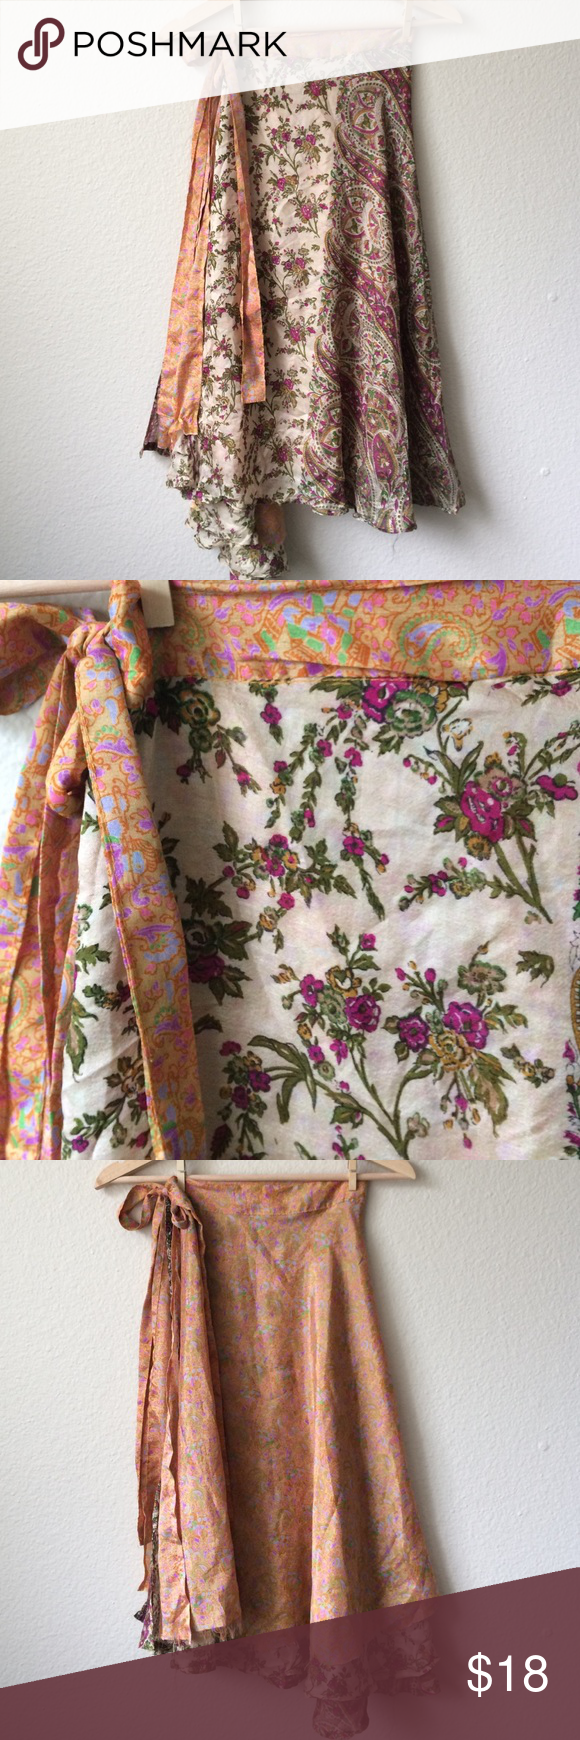 Vintage reversible flower power wrap skirt. Adorable, and reversible, this skirt goes to the mid calf. Reversible, printed silks on either side. Dress it up or down. This skirt is one size fits all, since you wrap it to fit your waist. Free People Skirts Circle & Skater